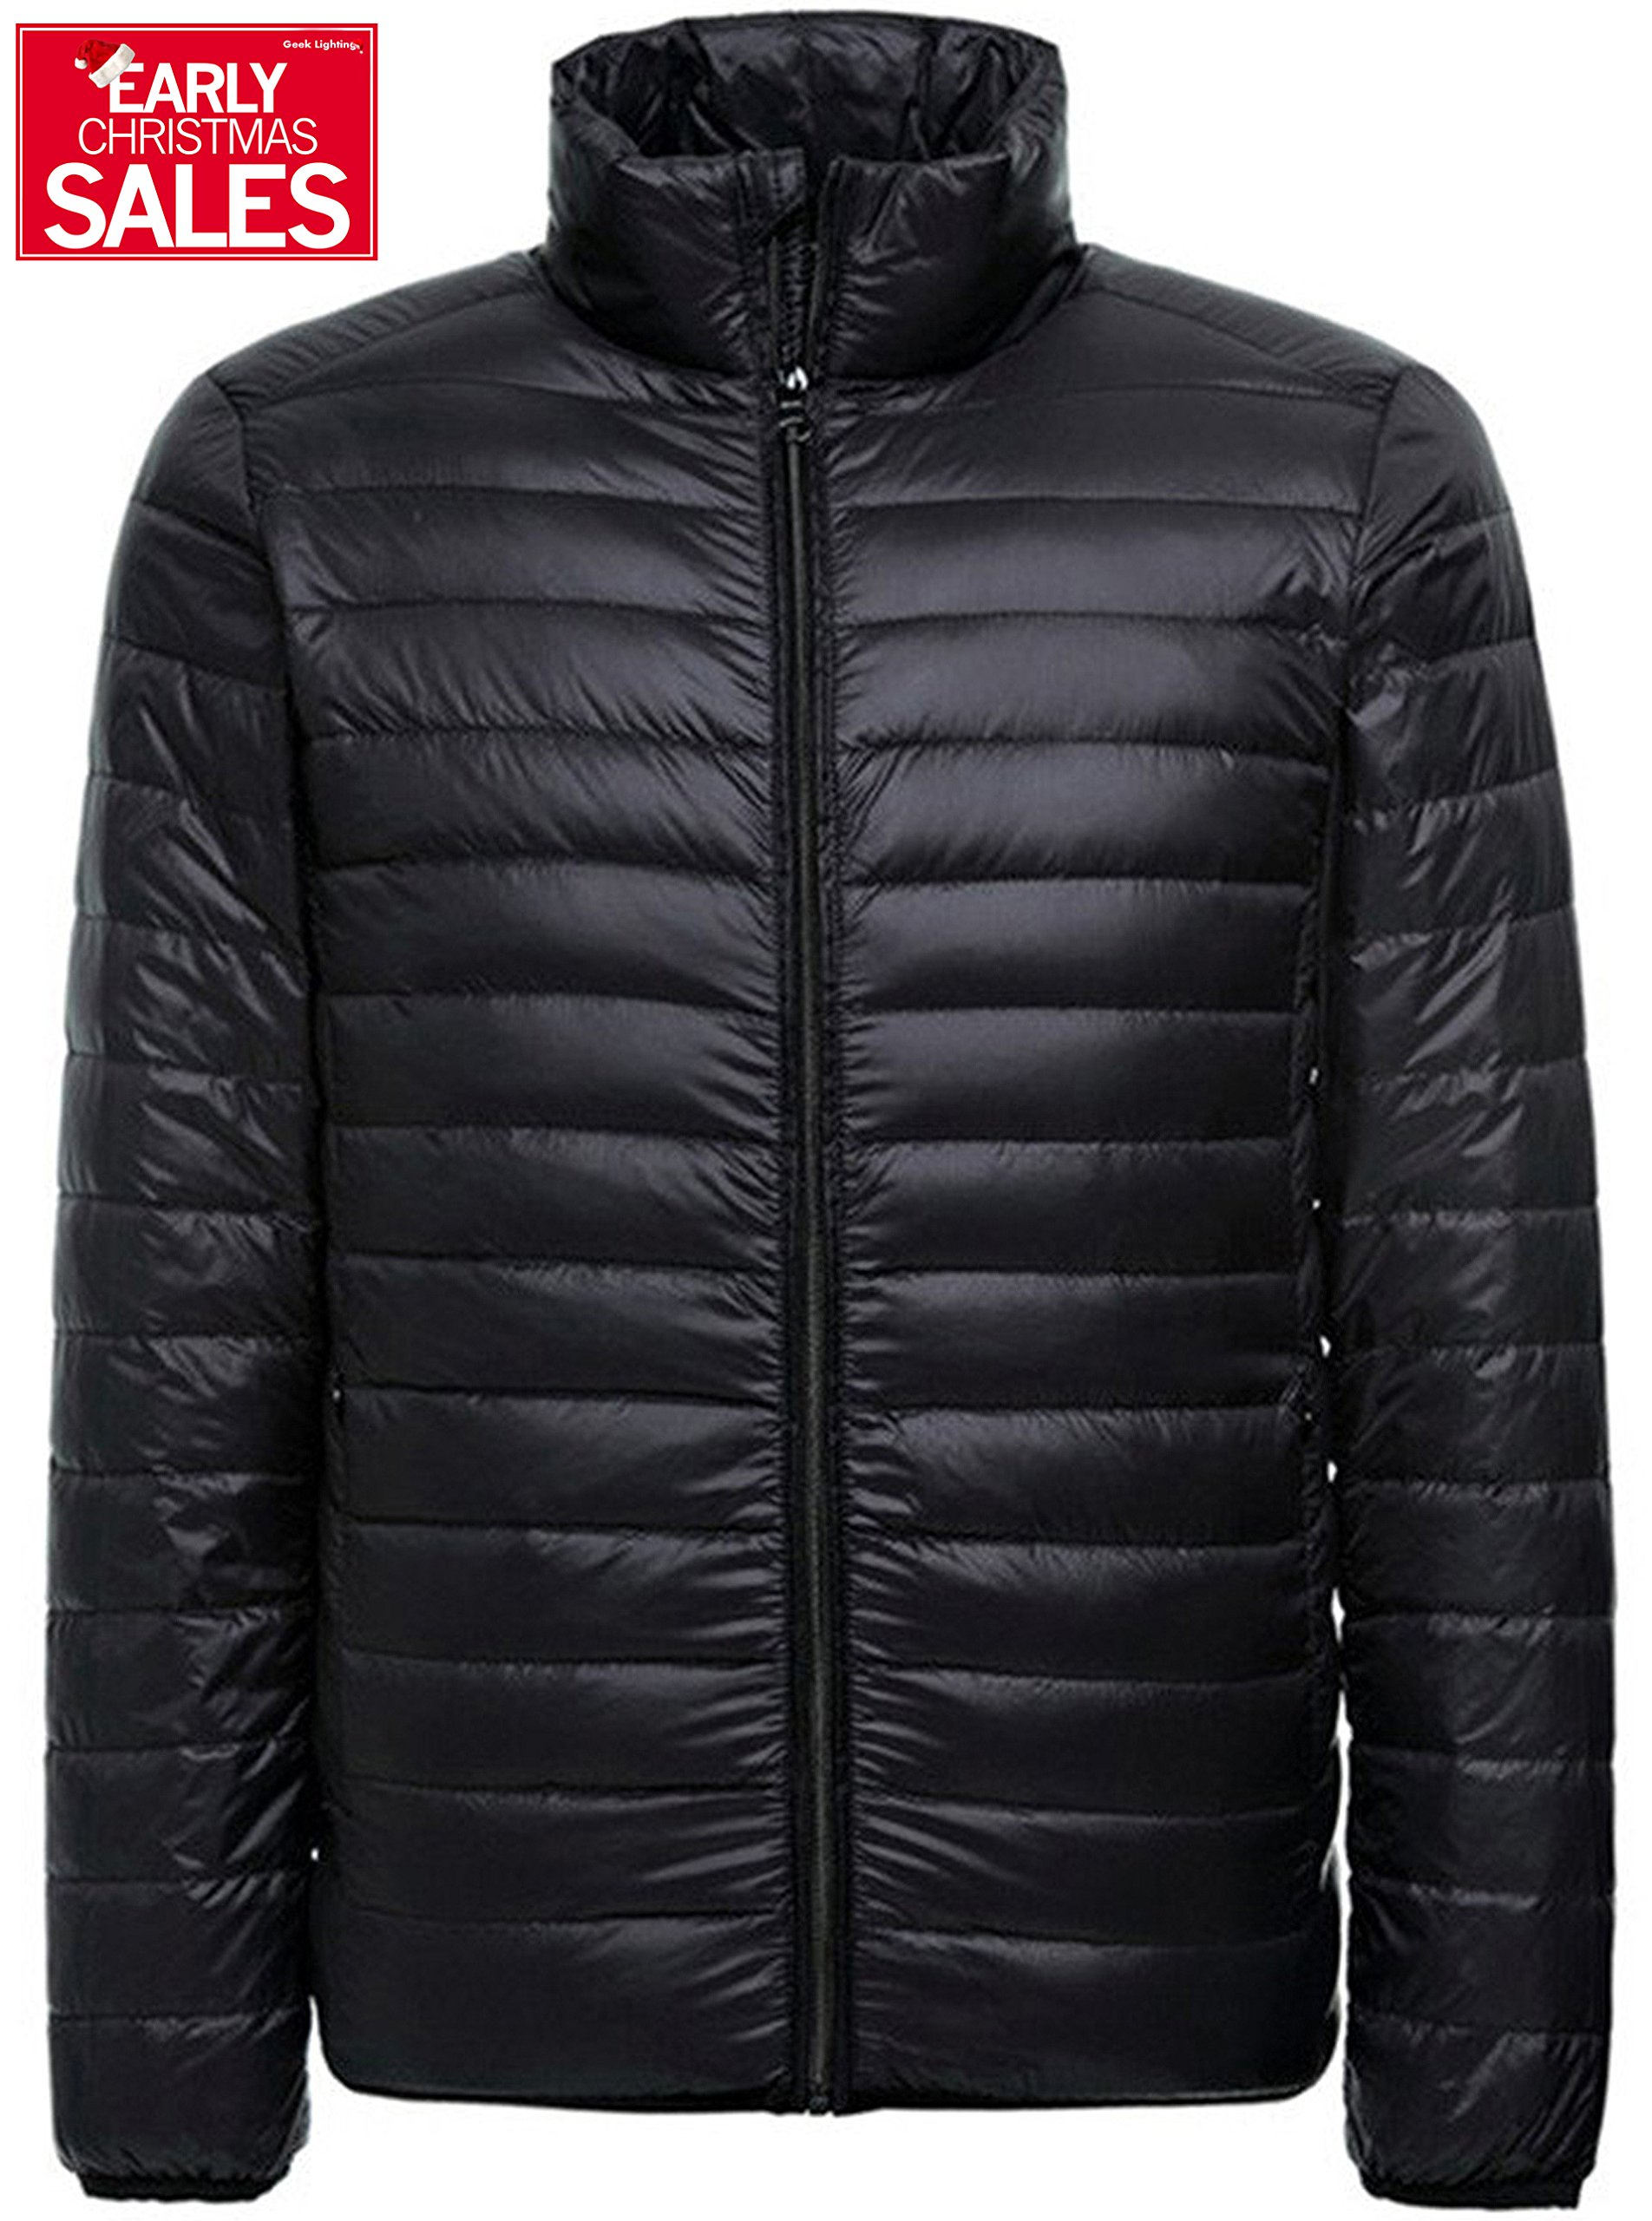 Men's Lightweight Hooded Packable Short Down Feather Jacket Outwear Puffer Down Coats Black Without Hooded X-Small/Tag Large